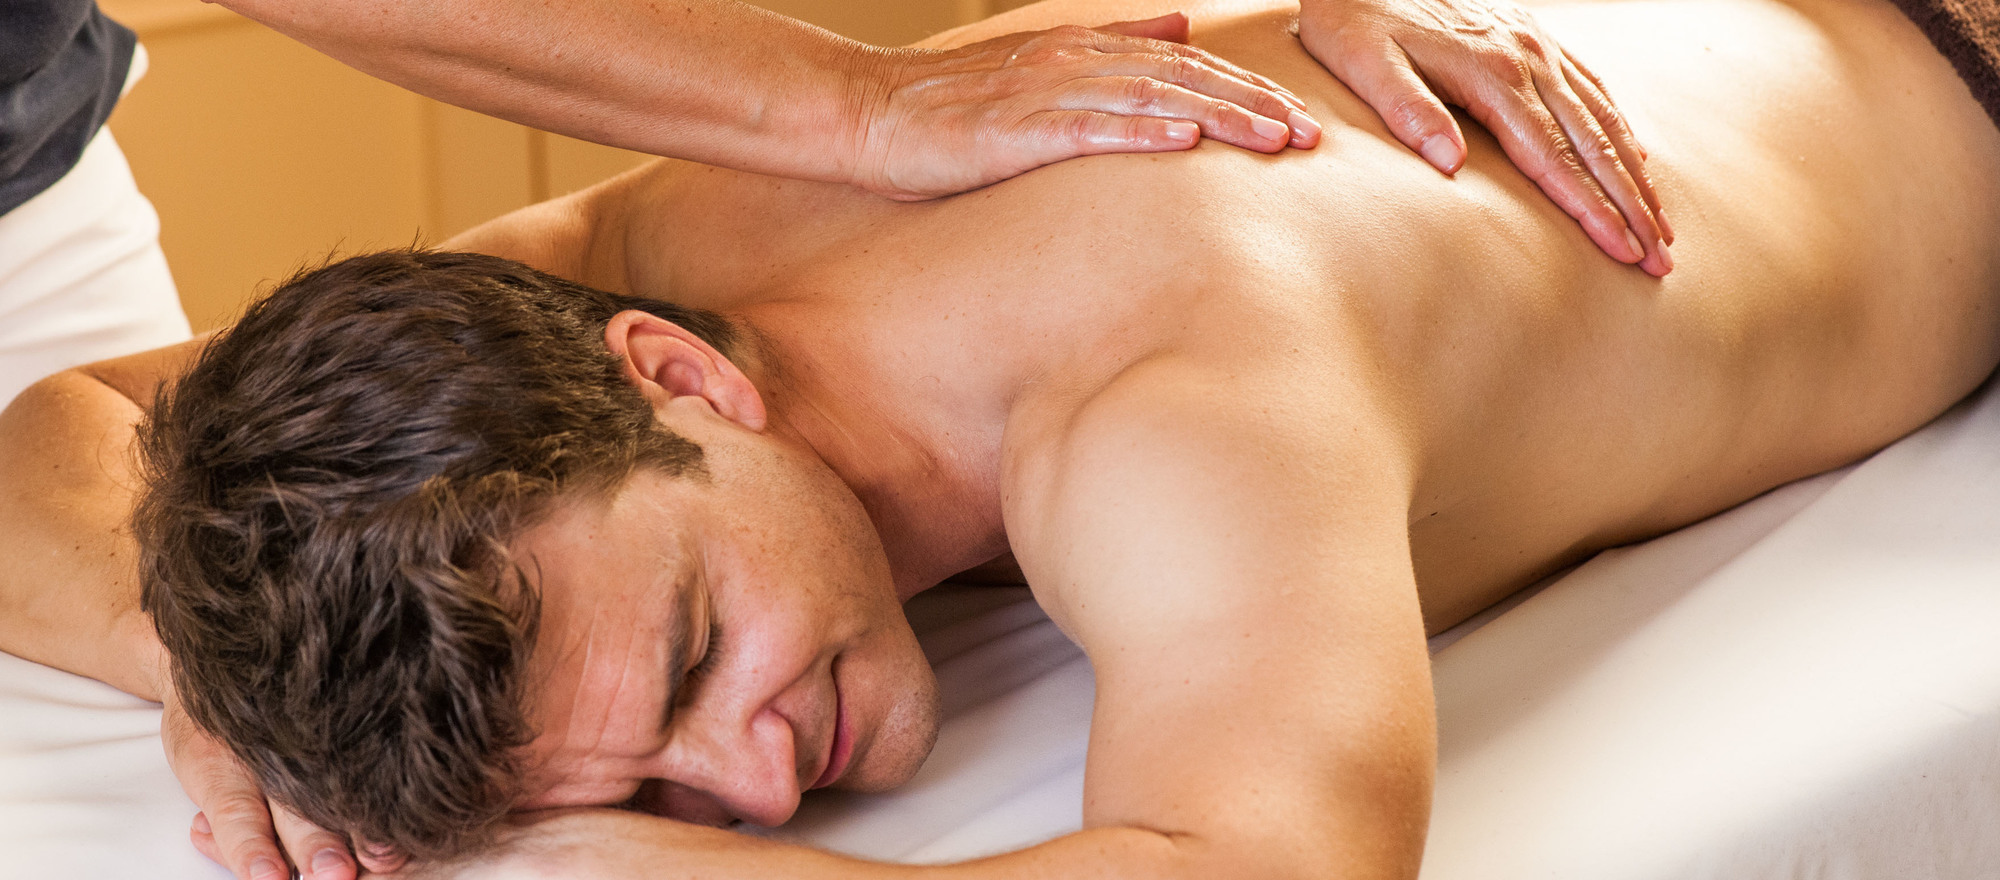 Muscle-relaxing back massage with natural oils in the 4-star hotel Ringhotel Birke in Kiel